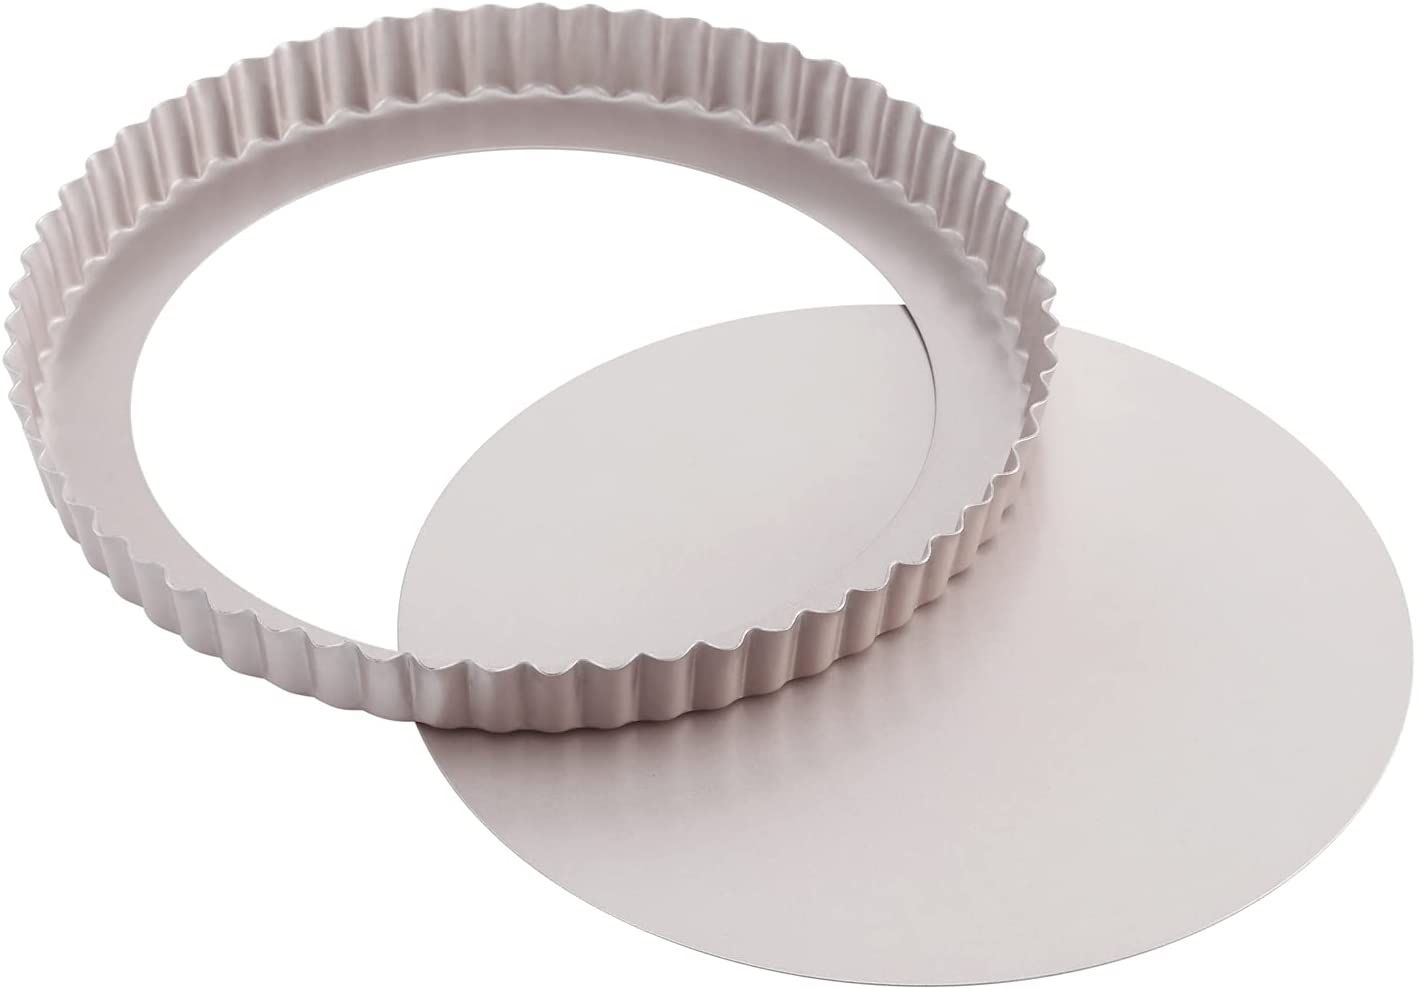 CHEFMADE 9.5-Inch Round Tart Pan with Removable Loose Bottom